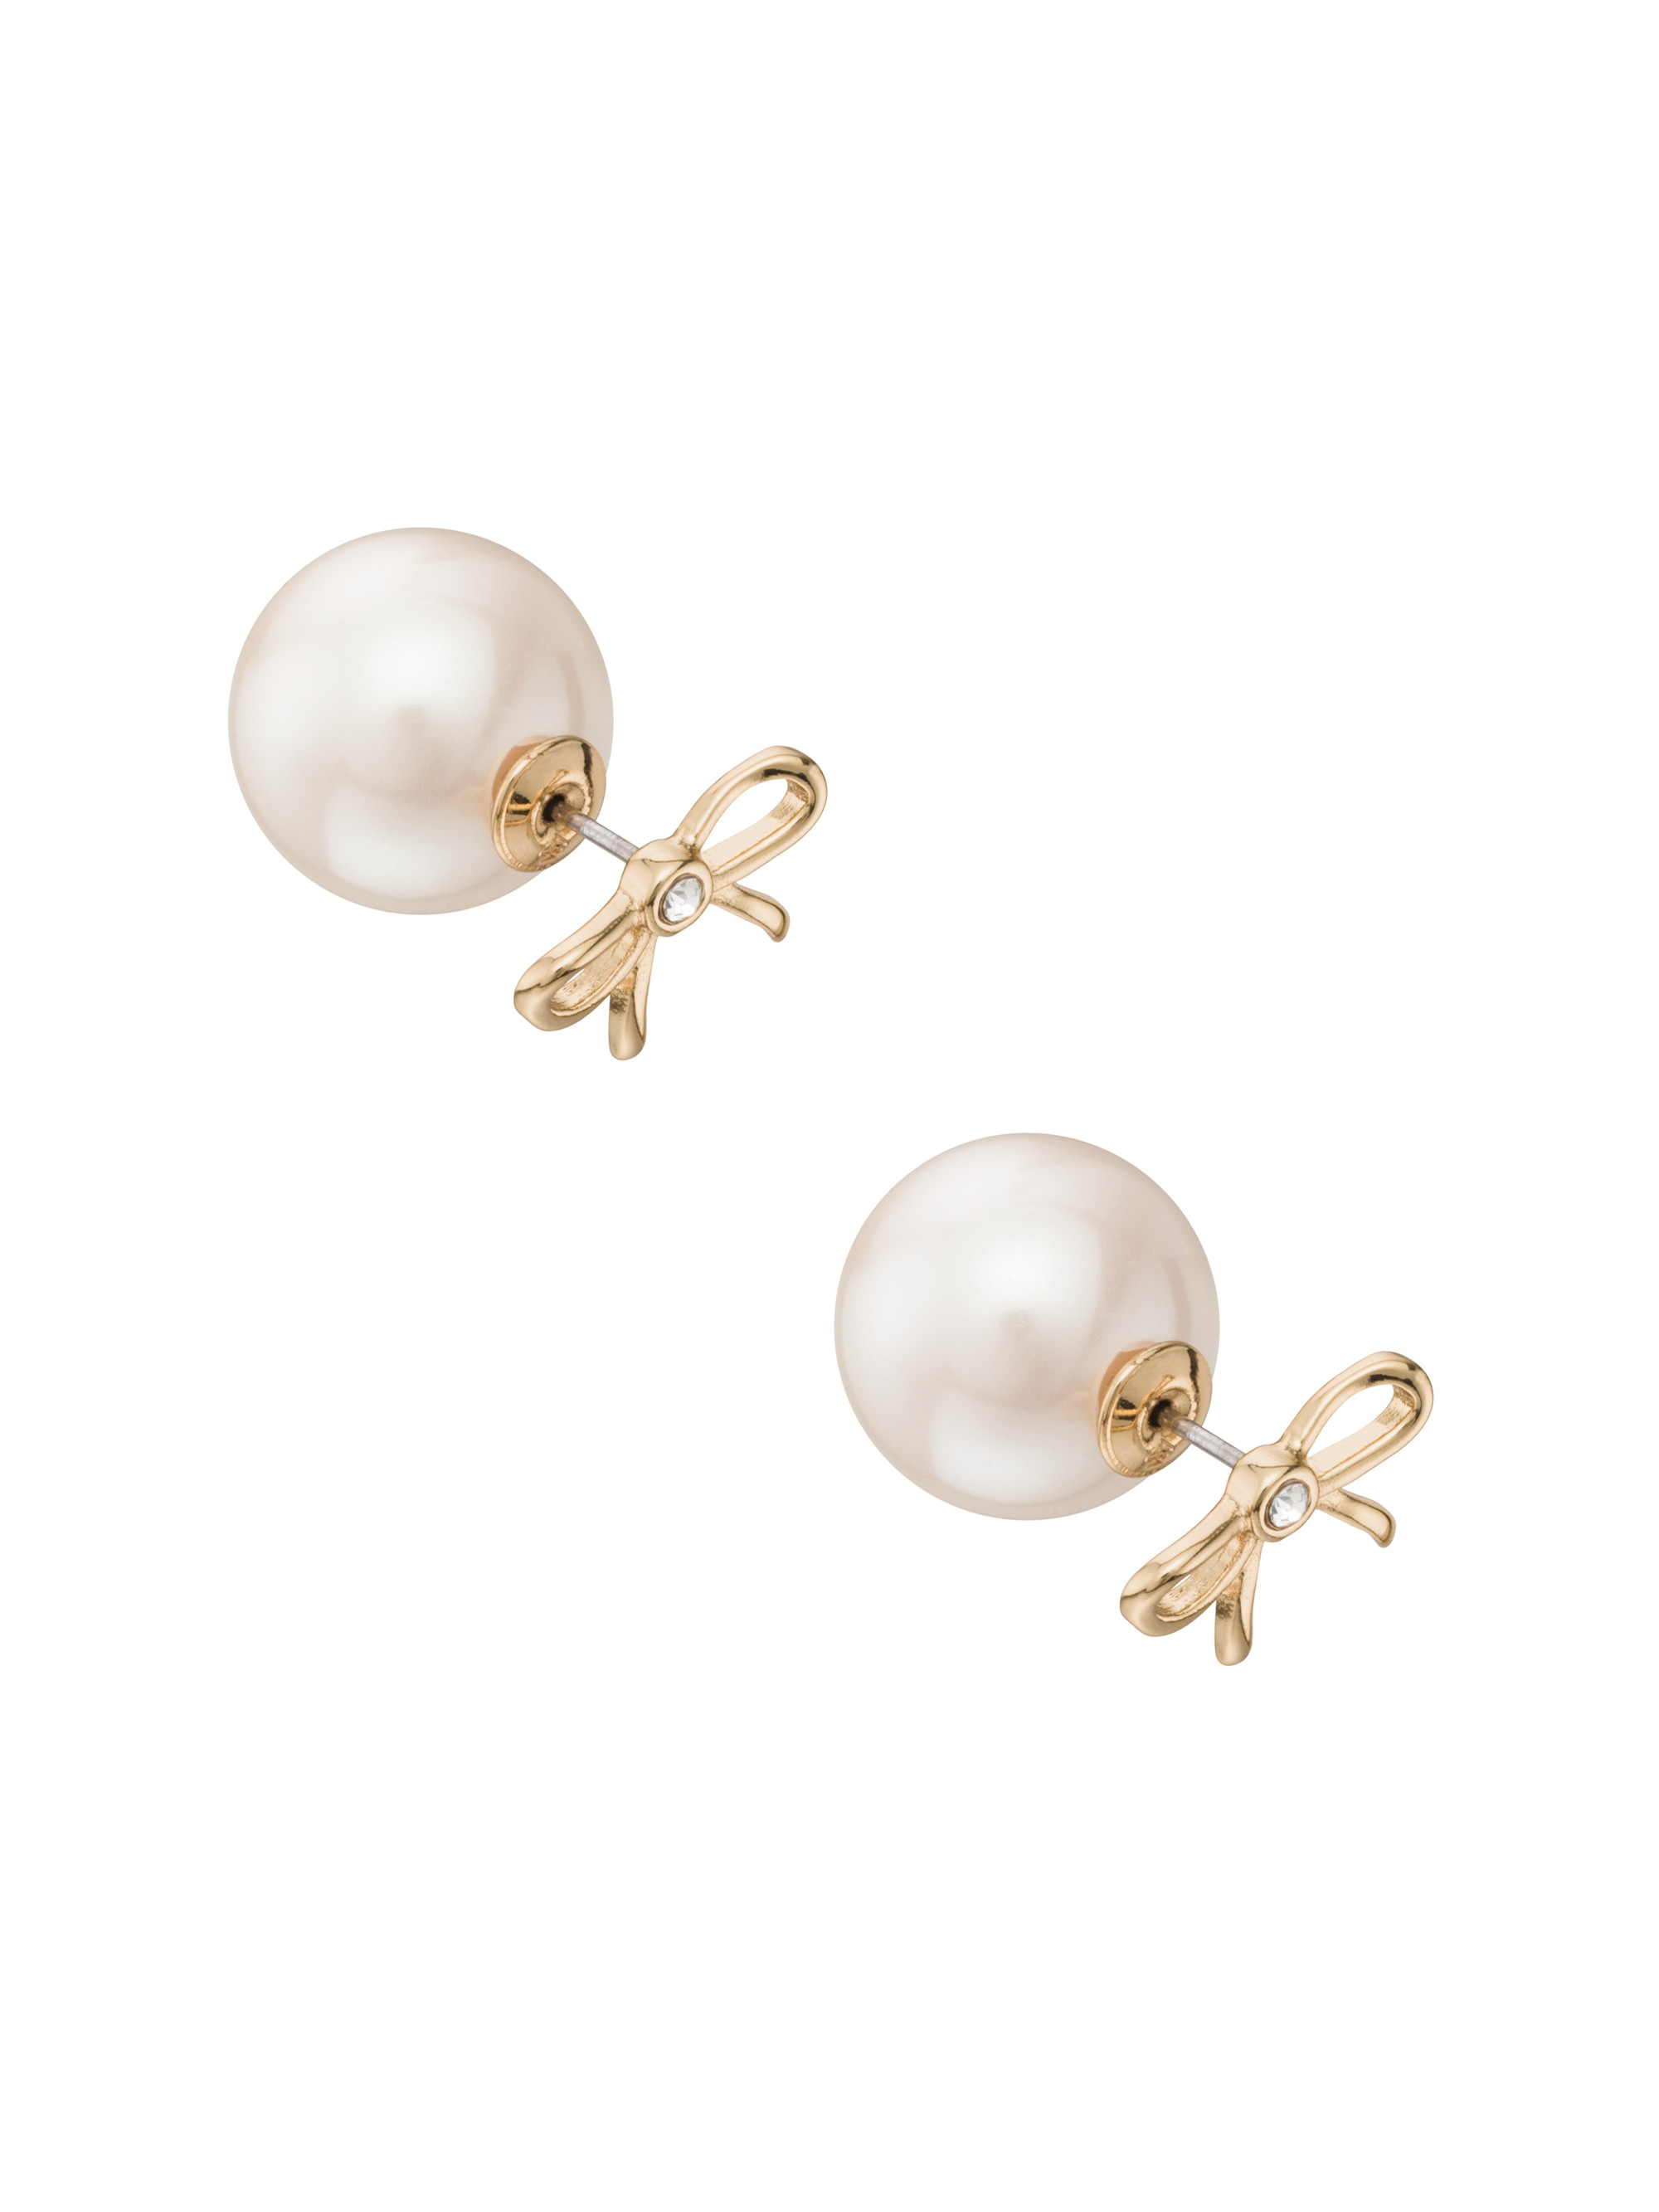 york spade faux for org pearl fake new in stud secret garden earrings kate